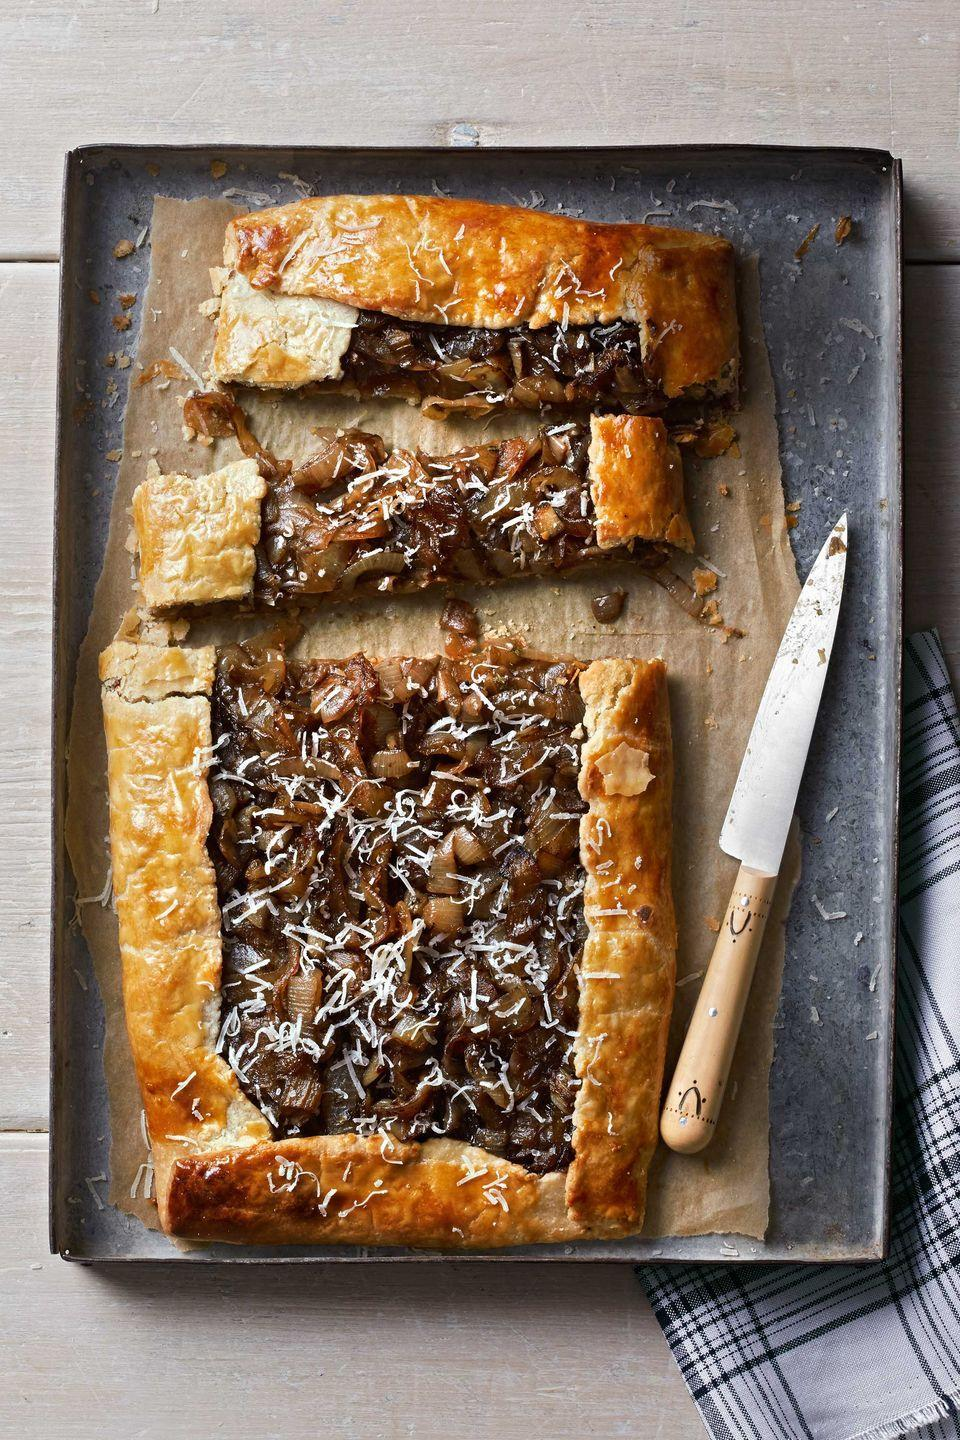 "<p>Dijon mustard gives this dish—which can serve as a starter or a side—a kick.</p><p><strong><a href=""https://www.countryliving.com/food-drinks/recipes/a4562/caramelized-onion-galette-recipe-clx1113/"" rel=""nofollow noopener"" target=""_blank"" data-ylk=""slk:Get the recipe"" class=""link rapid-noclick-resp"">Get the recipe</a>.</strong></p>"